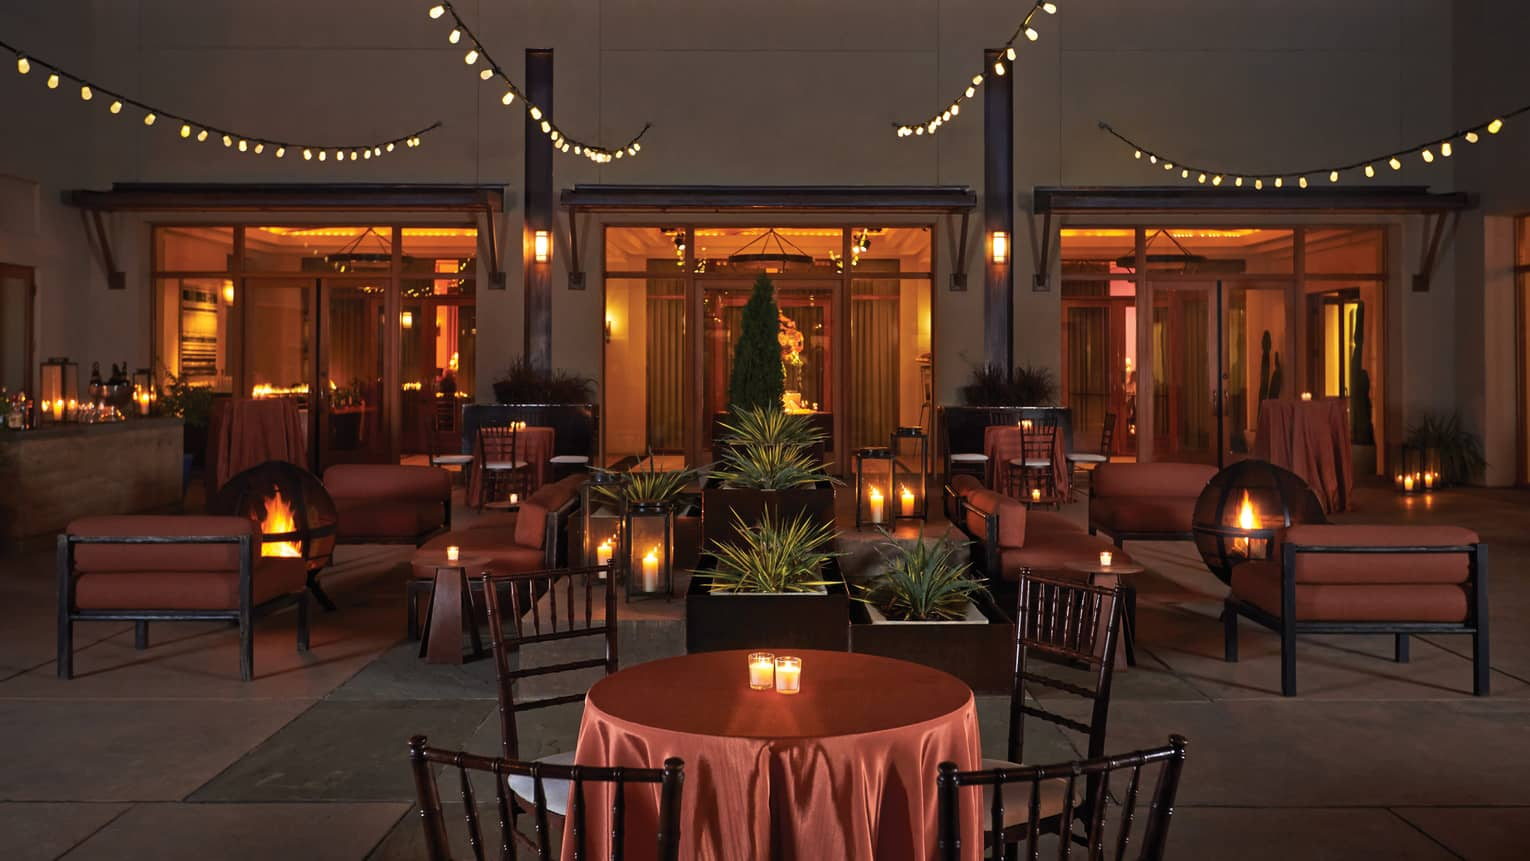 Terra courtyard at night, lounge furniture surrounding fire pits, candles, strings of lights